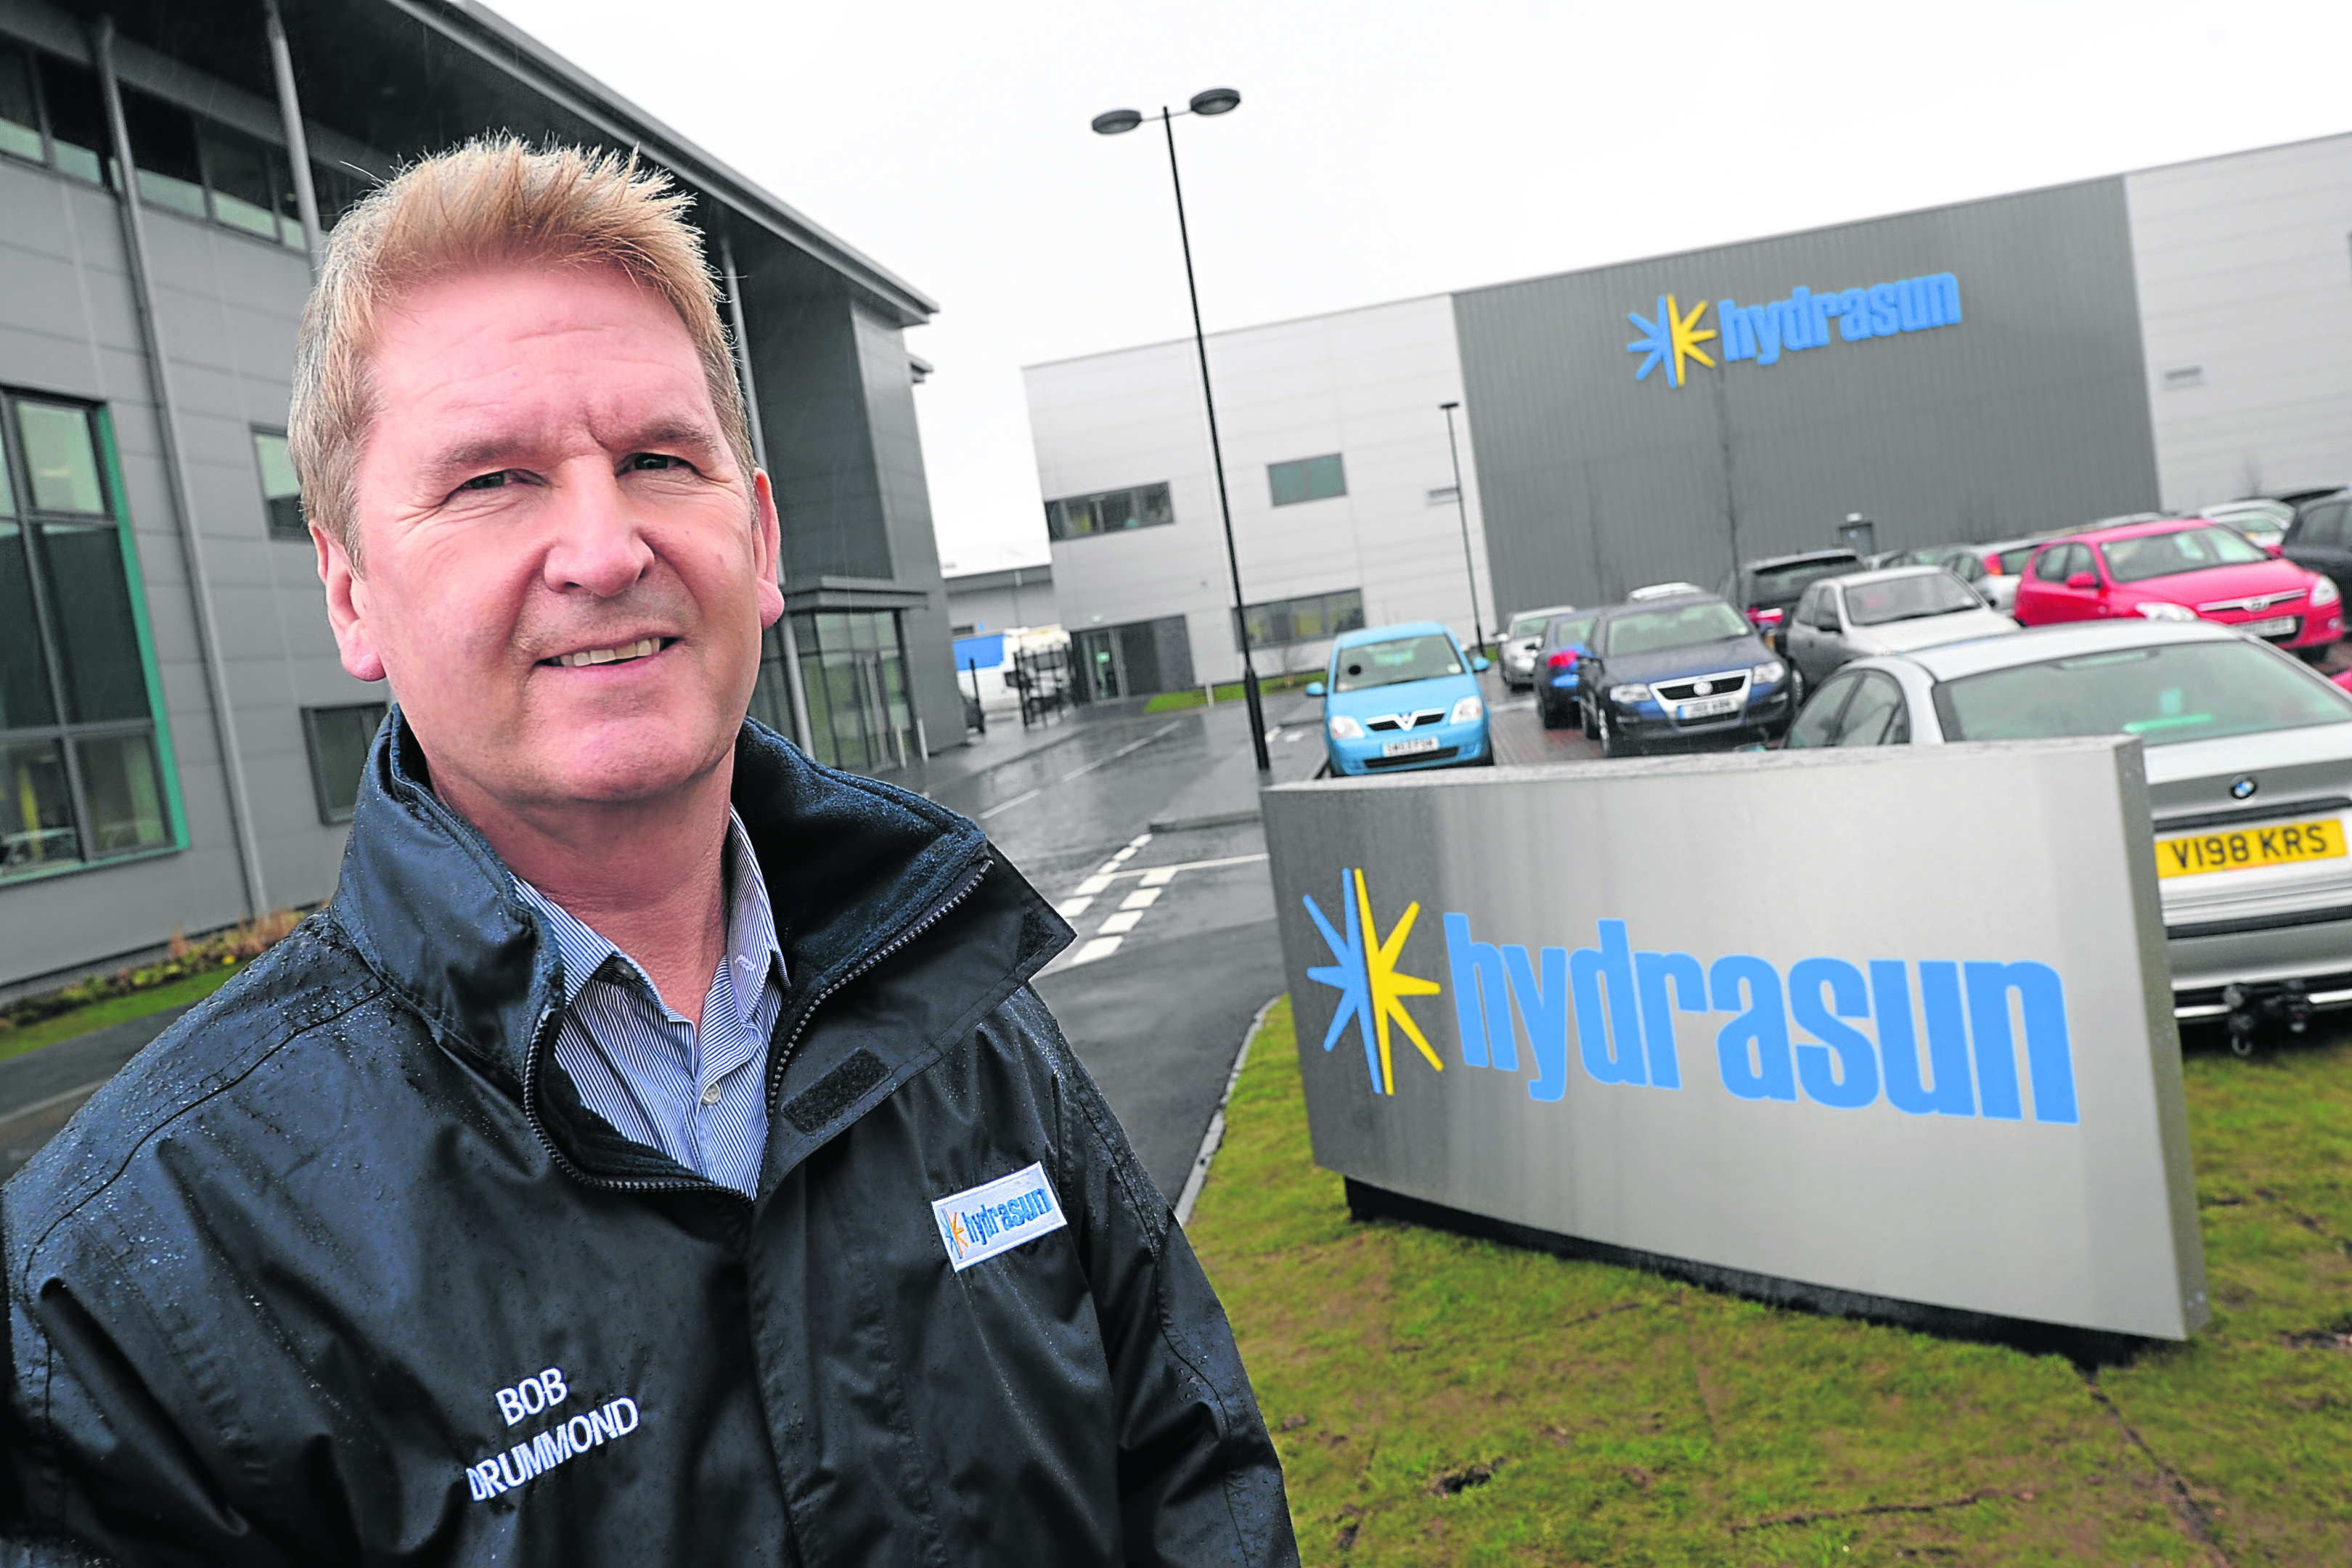 Ray of hope emerges as Hydrasun aim to hire